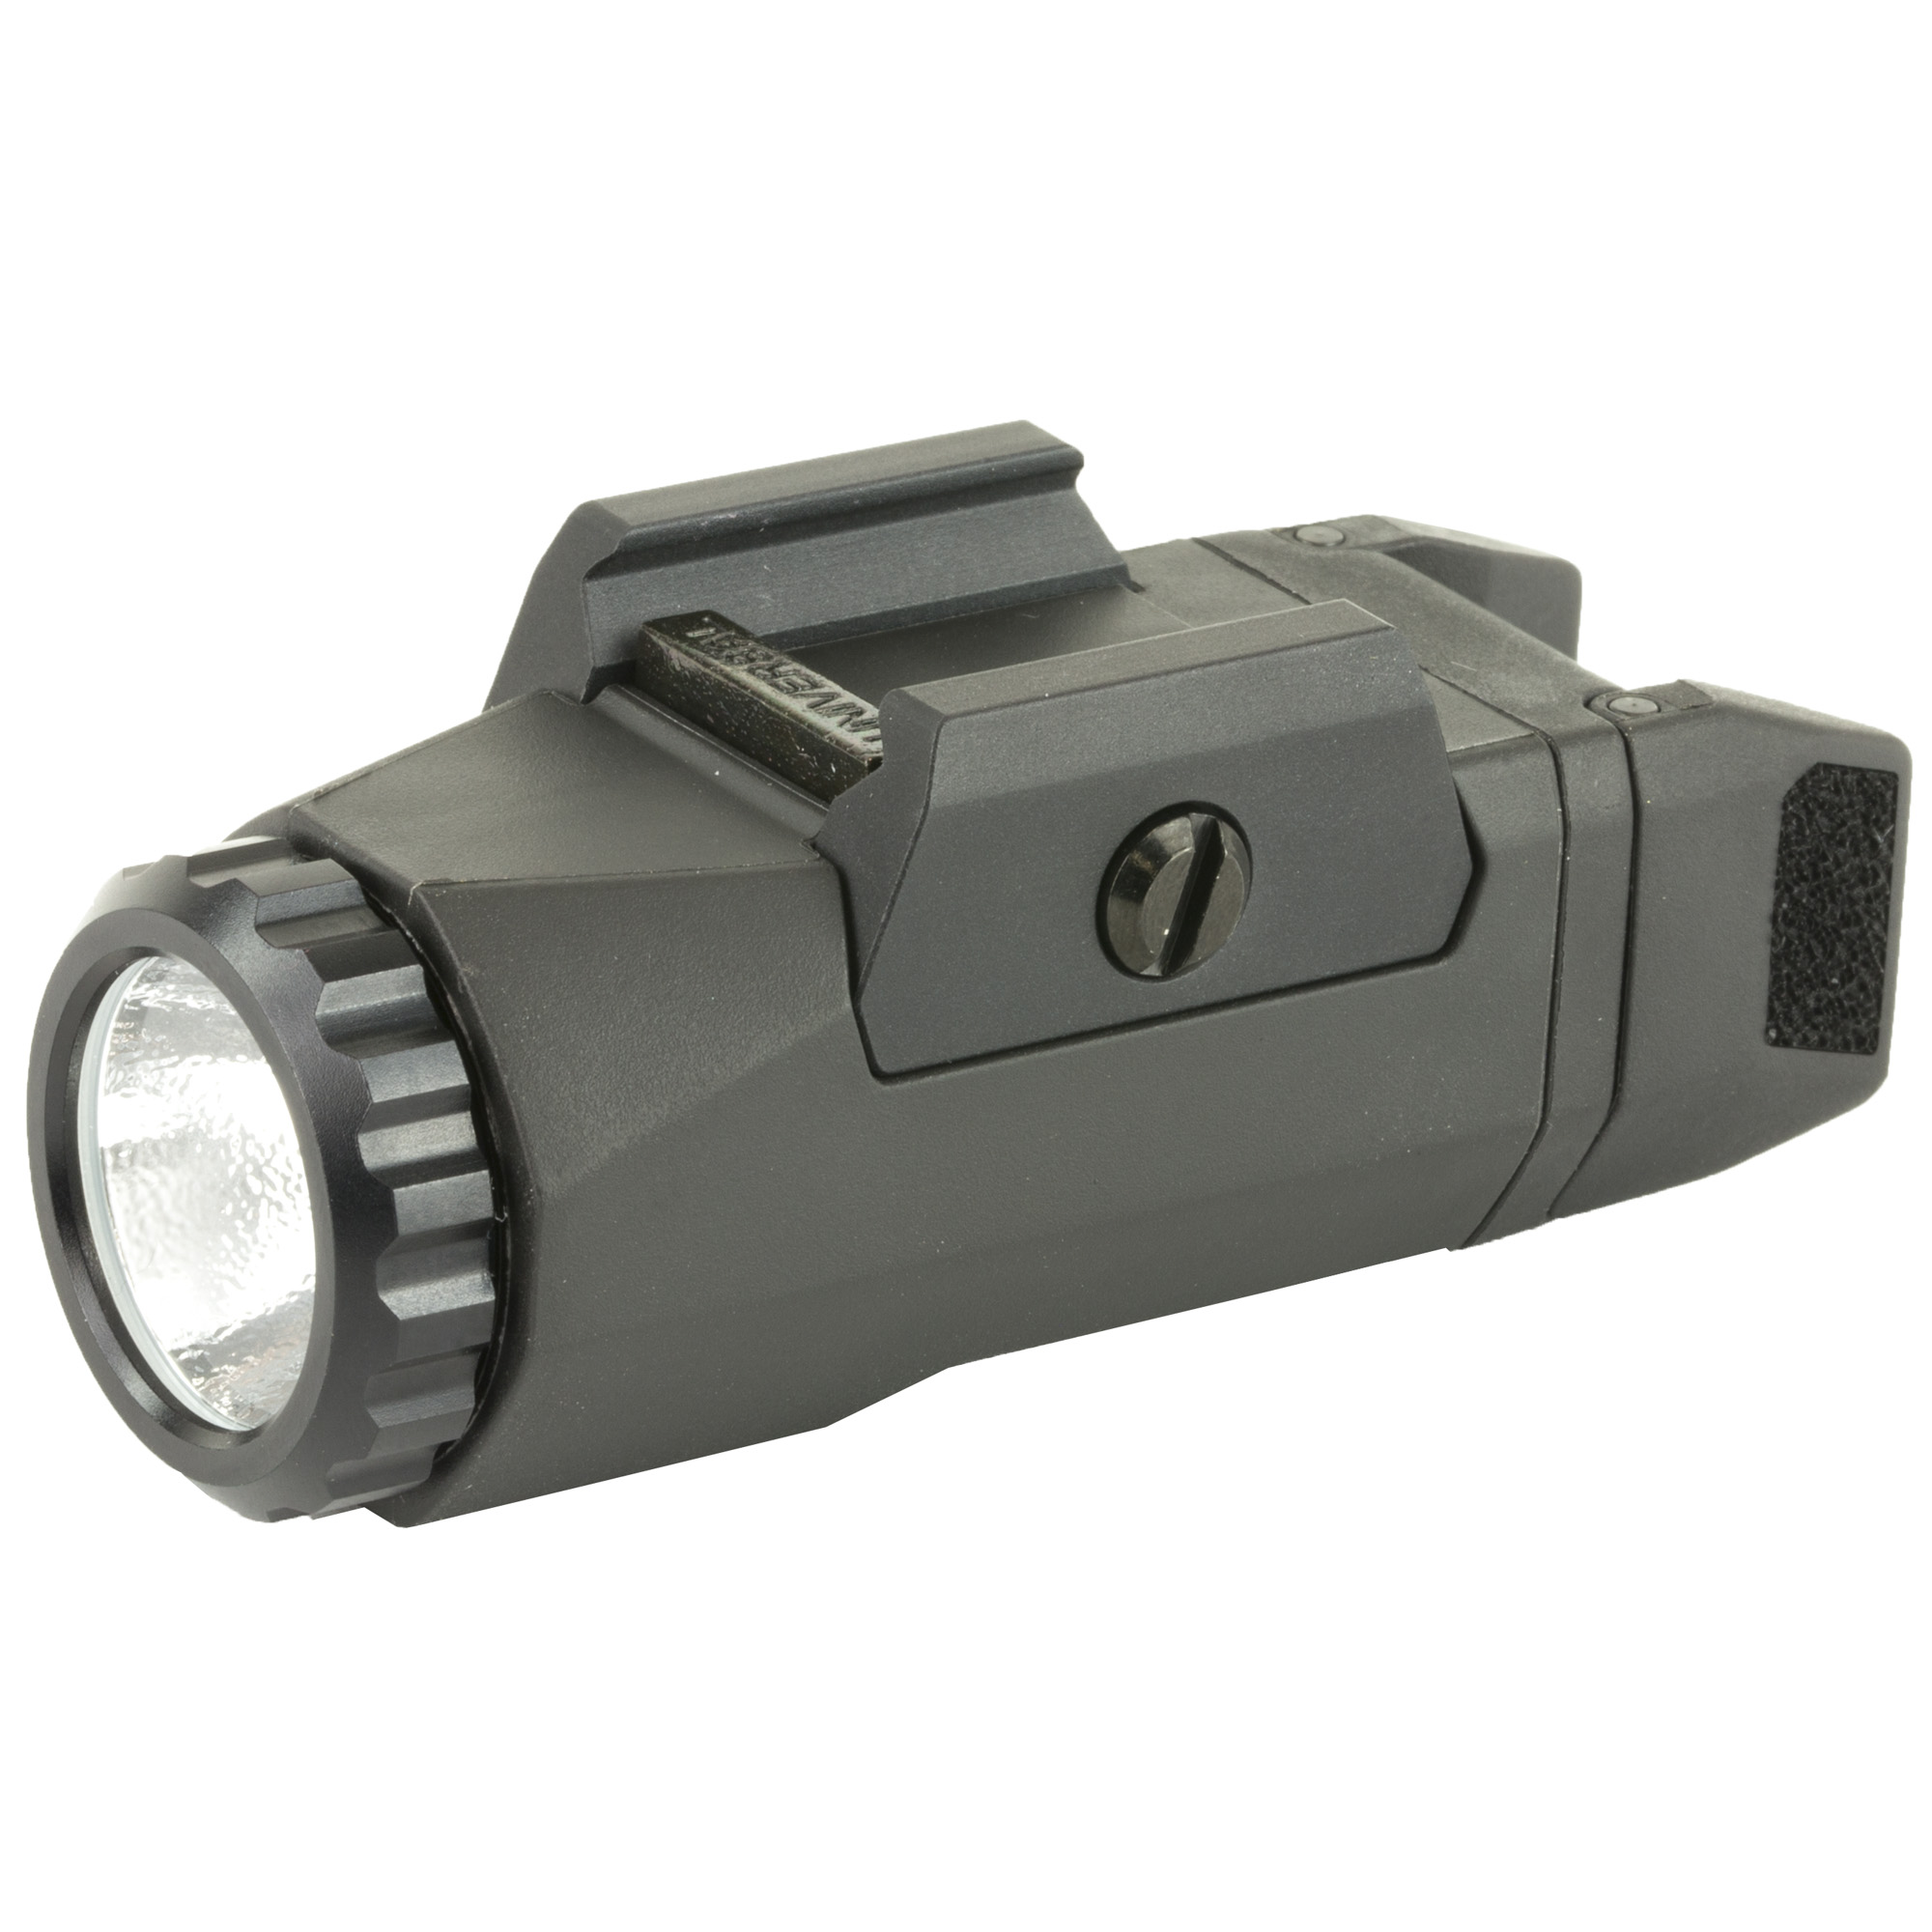 """With 400 lumens of vibrant white light"""" the Gen3 APL provides a high-intensity tight beam to fill your field of view for close to mid-range target identification for up to 1.5 hours. At less than 3 ounces"""" the water-resistant"""" glass reinforced polymer body is incredibly powerful yet compact in size. The APL integrates seamlessly with MIL-STD 1913"""" Glock"""" and most major firearm manufactures rails. The APL offers constant and momentary operating modes"""" textured paddles for a non-slip grip"""" and an ambidextrous on/off switch to enable left or right hand activation and natural movement. In addition"""" the easy-to-operate lockout system ensures the light isn't activated until you're ready."""